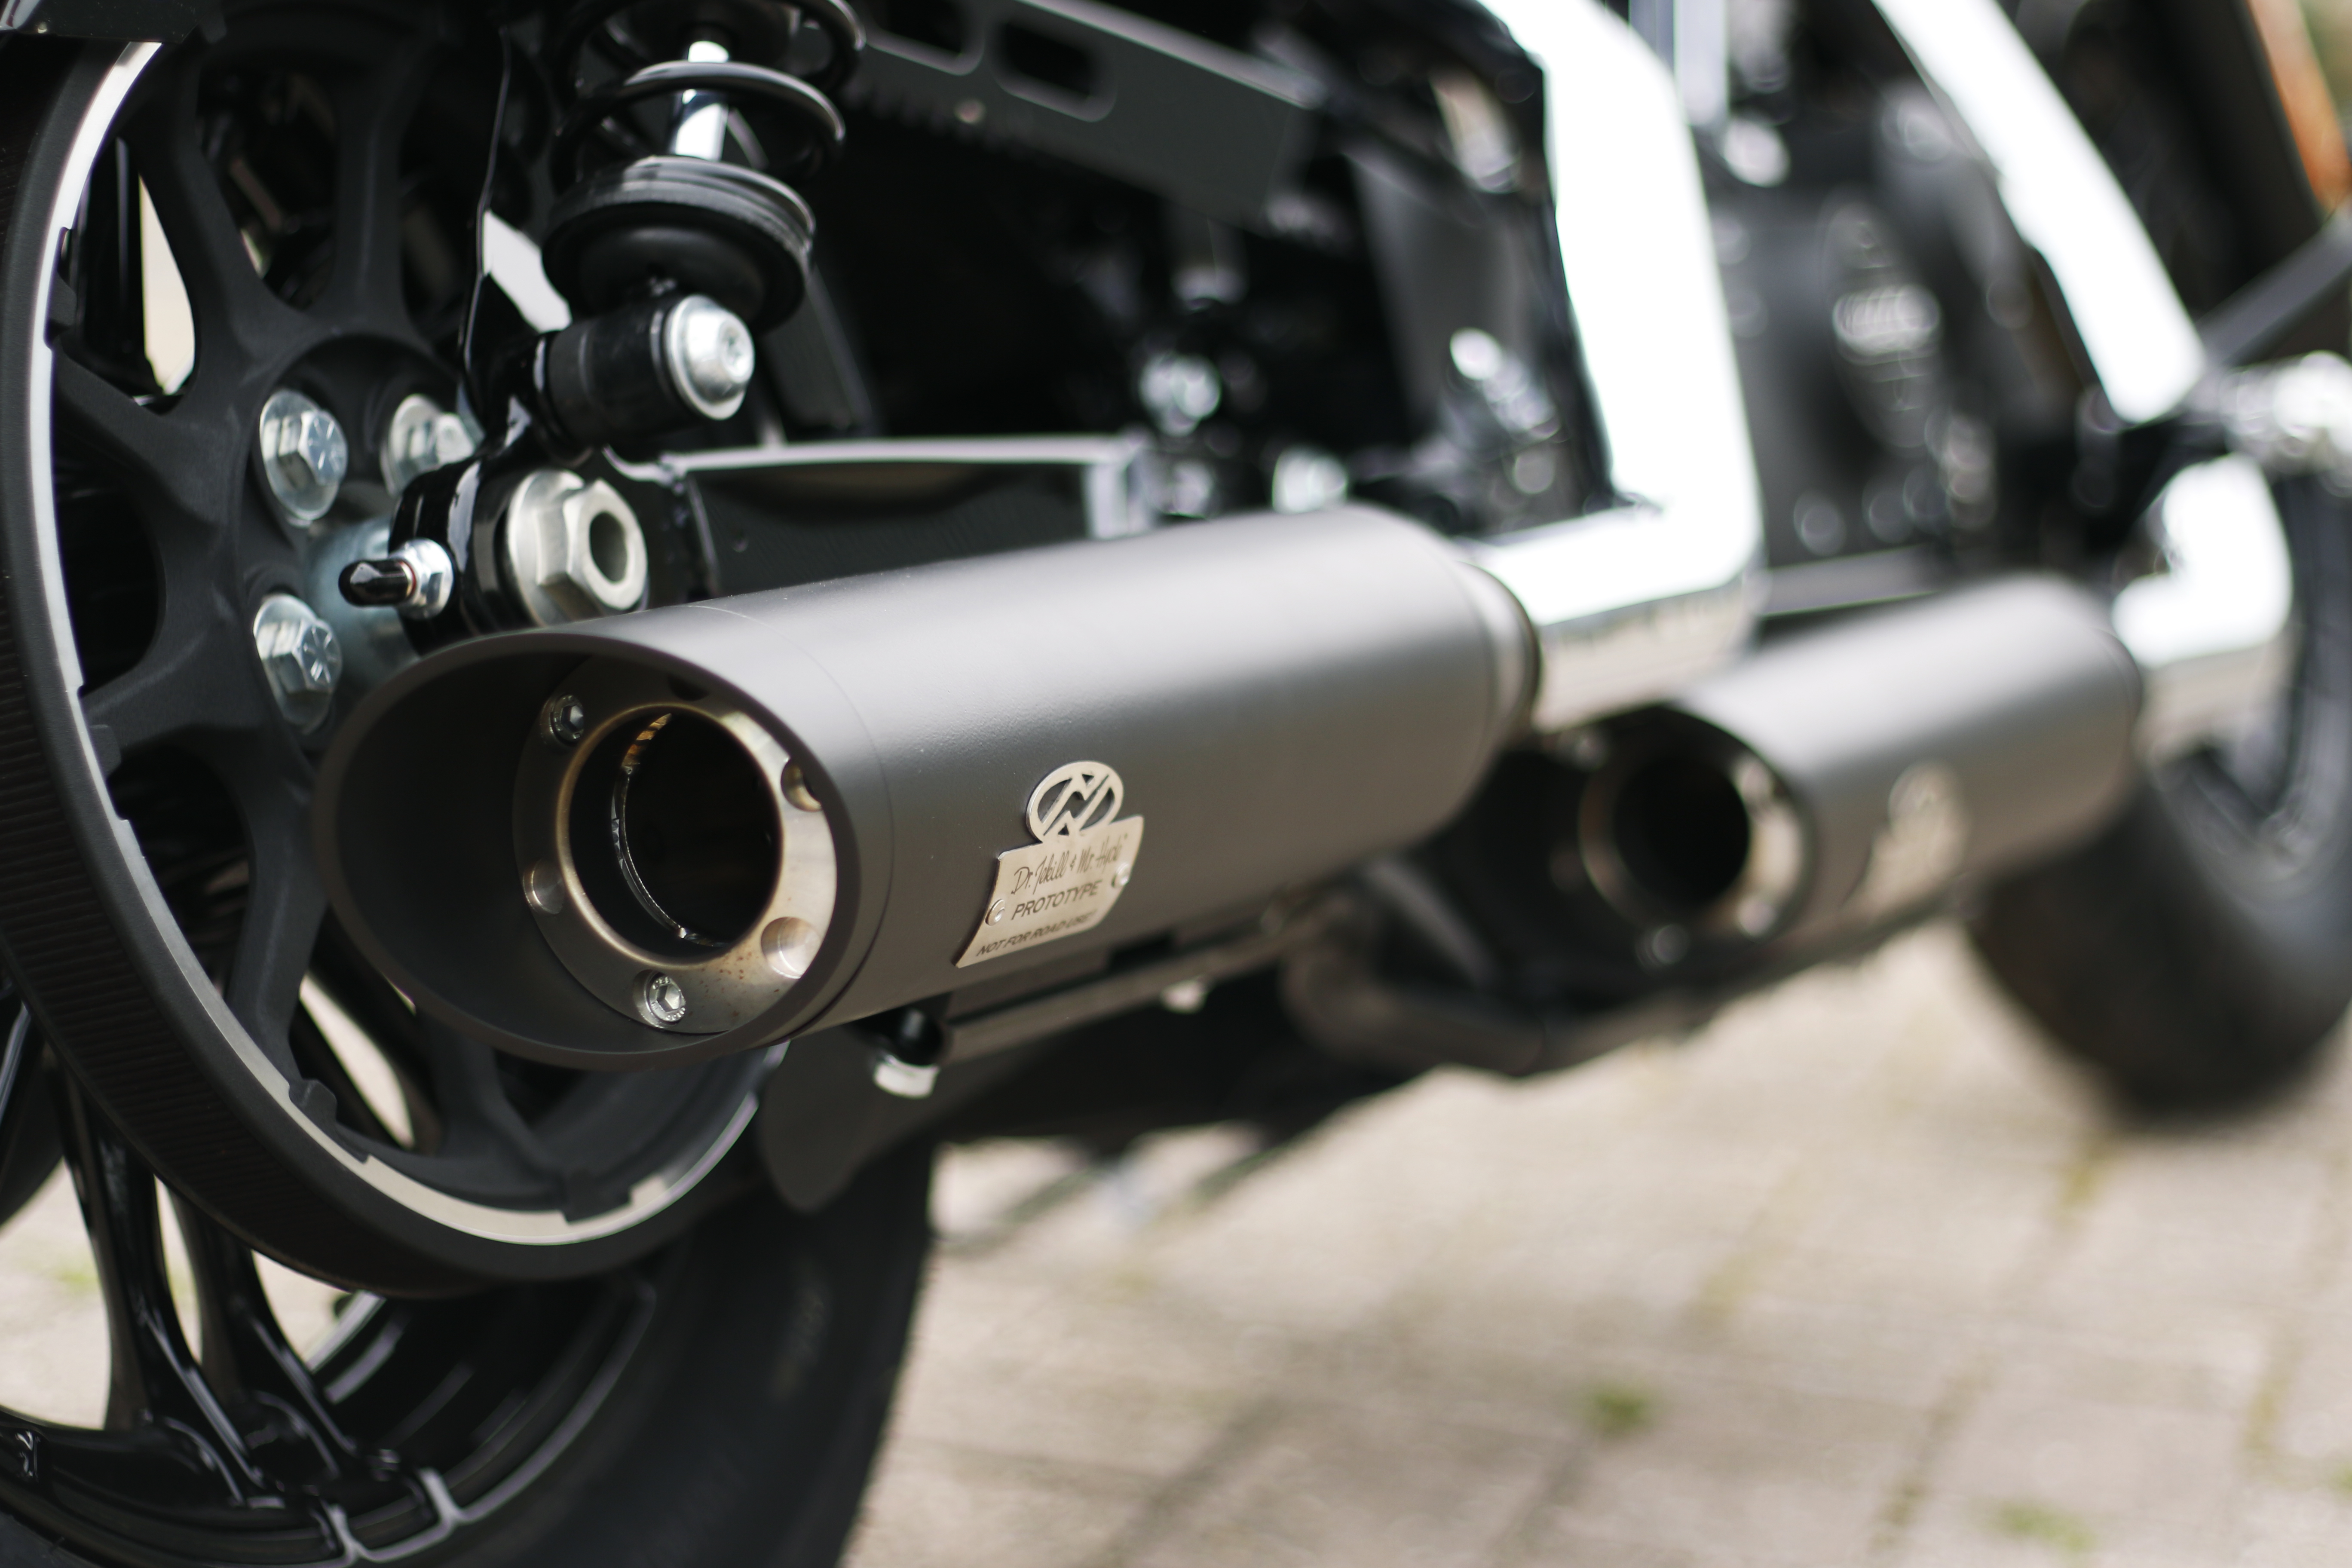 Harley Davidson Sportster Exhaust Dr Jekill Mr Hyde Electronically Adjustable Exhaust For Motorcycles Best Sound Street Legal